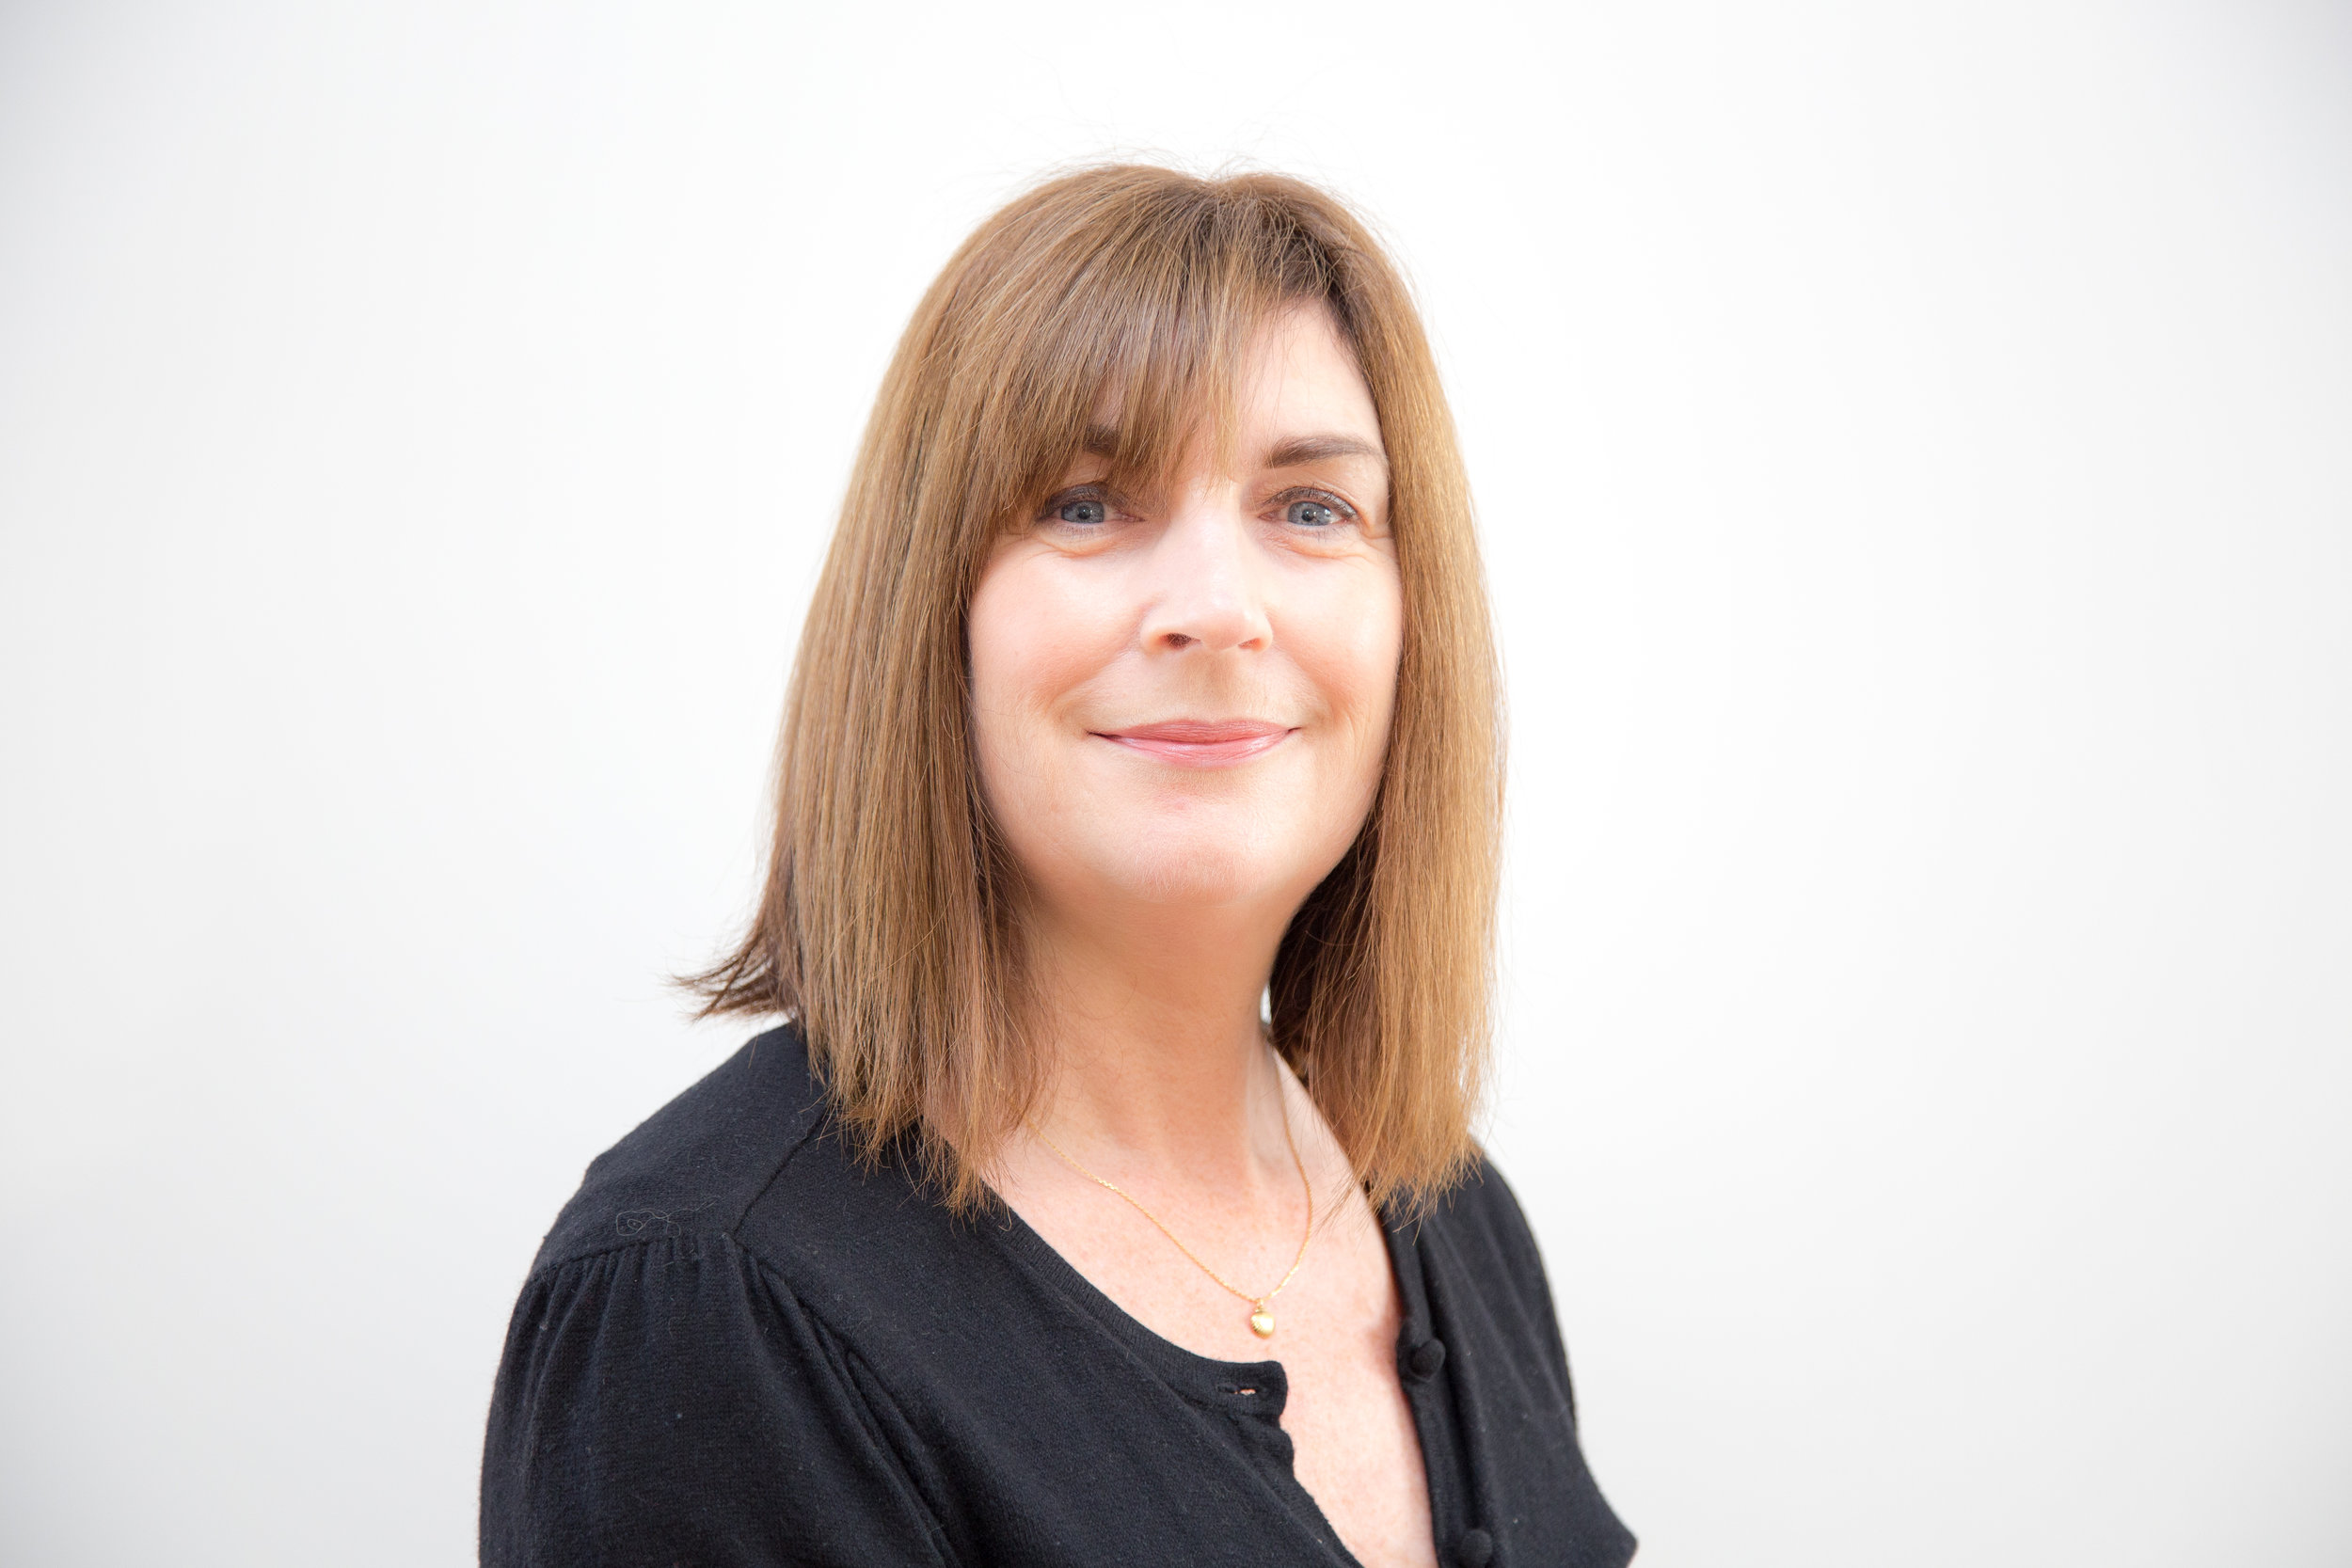 Lesley McMahon — Conveyancing Assistant, Residential Property